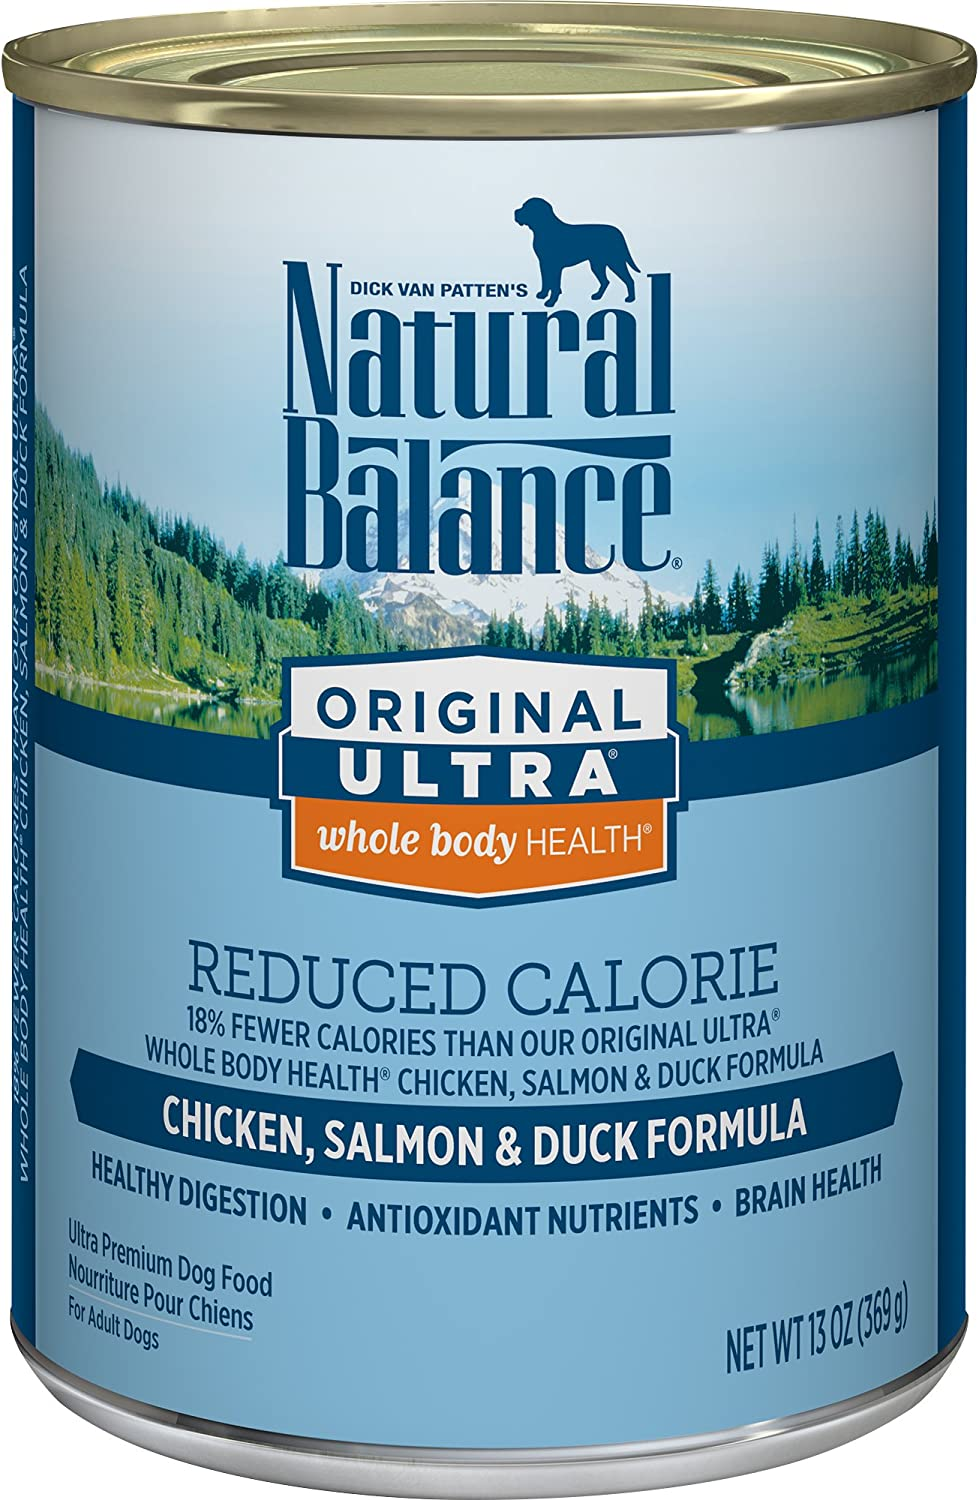 Natural Balance Original Ultra Whole Body Health Reduced Calorie Wet Dog Food Cans, 13Ounce (Pack of 12)